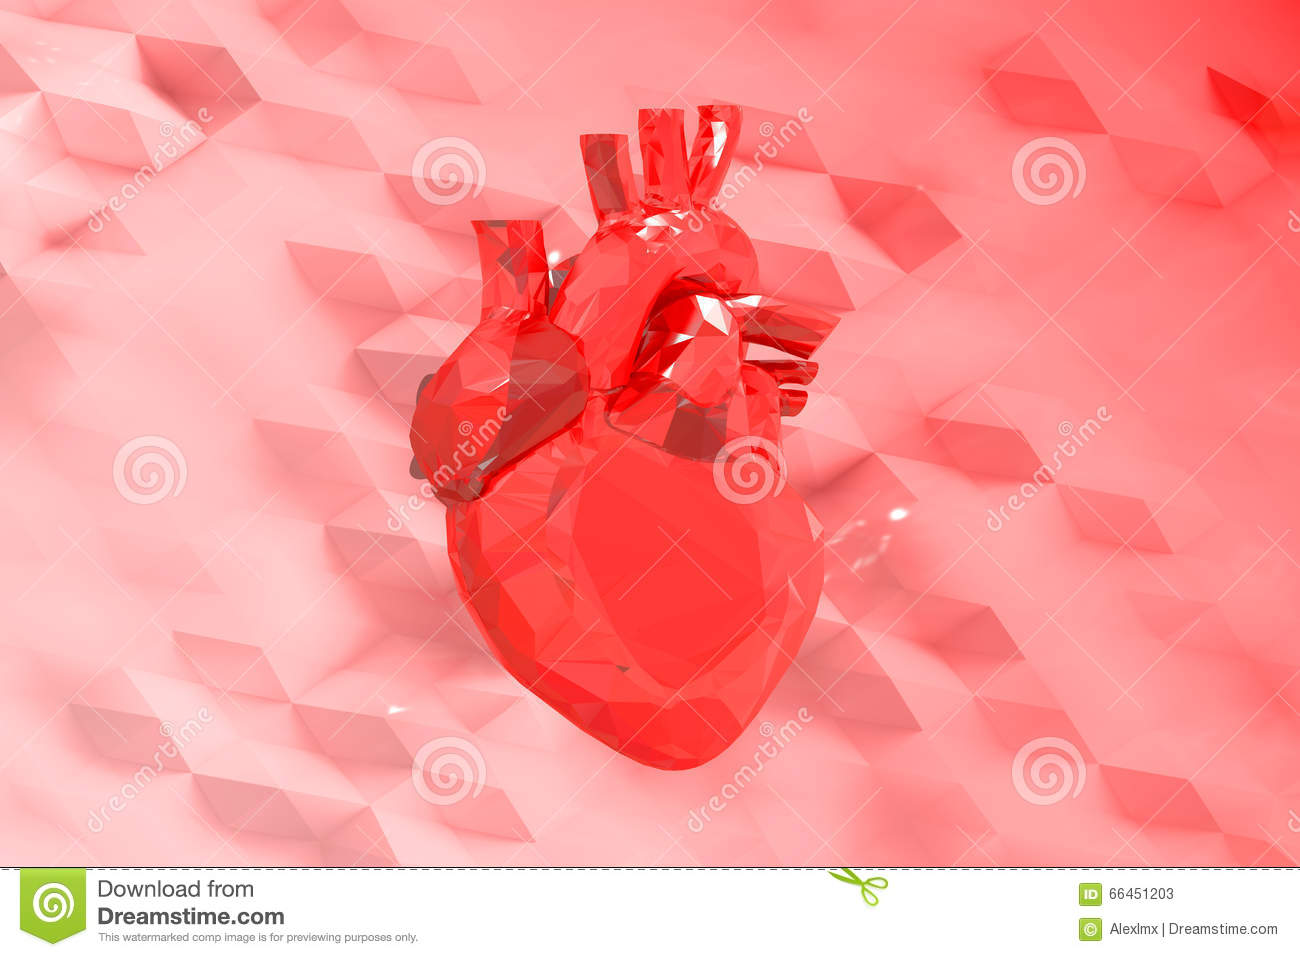 Abstract Red Low Poly Heart Stock Illustration